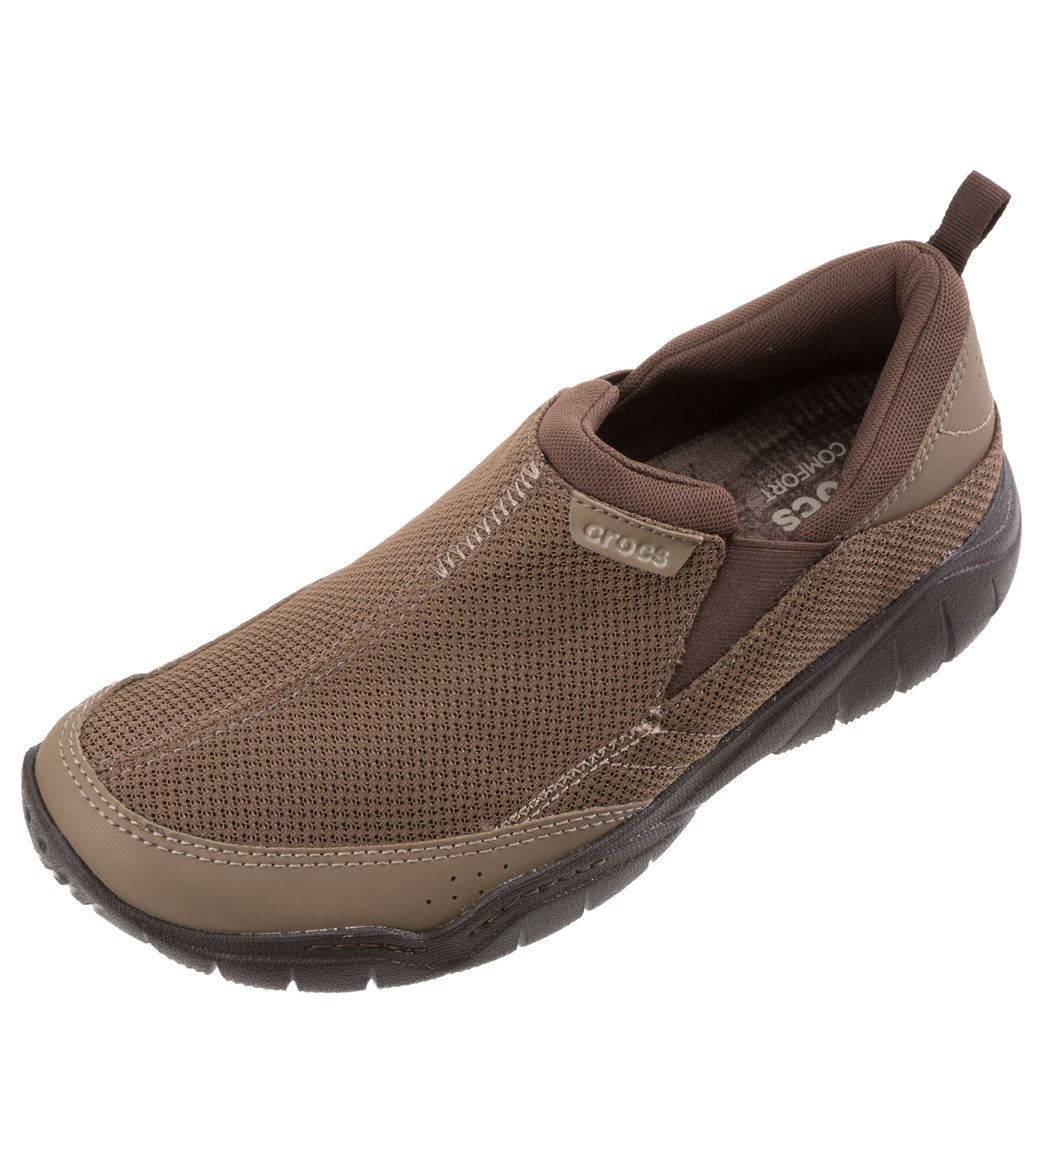 cf871dcab662 Crocs Men s Swiftwater Mesh Moc Slip On at SwimOutlet.com - Free Shipping